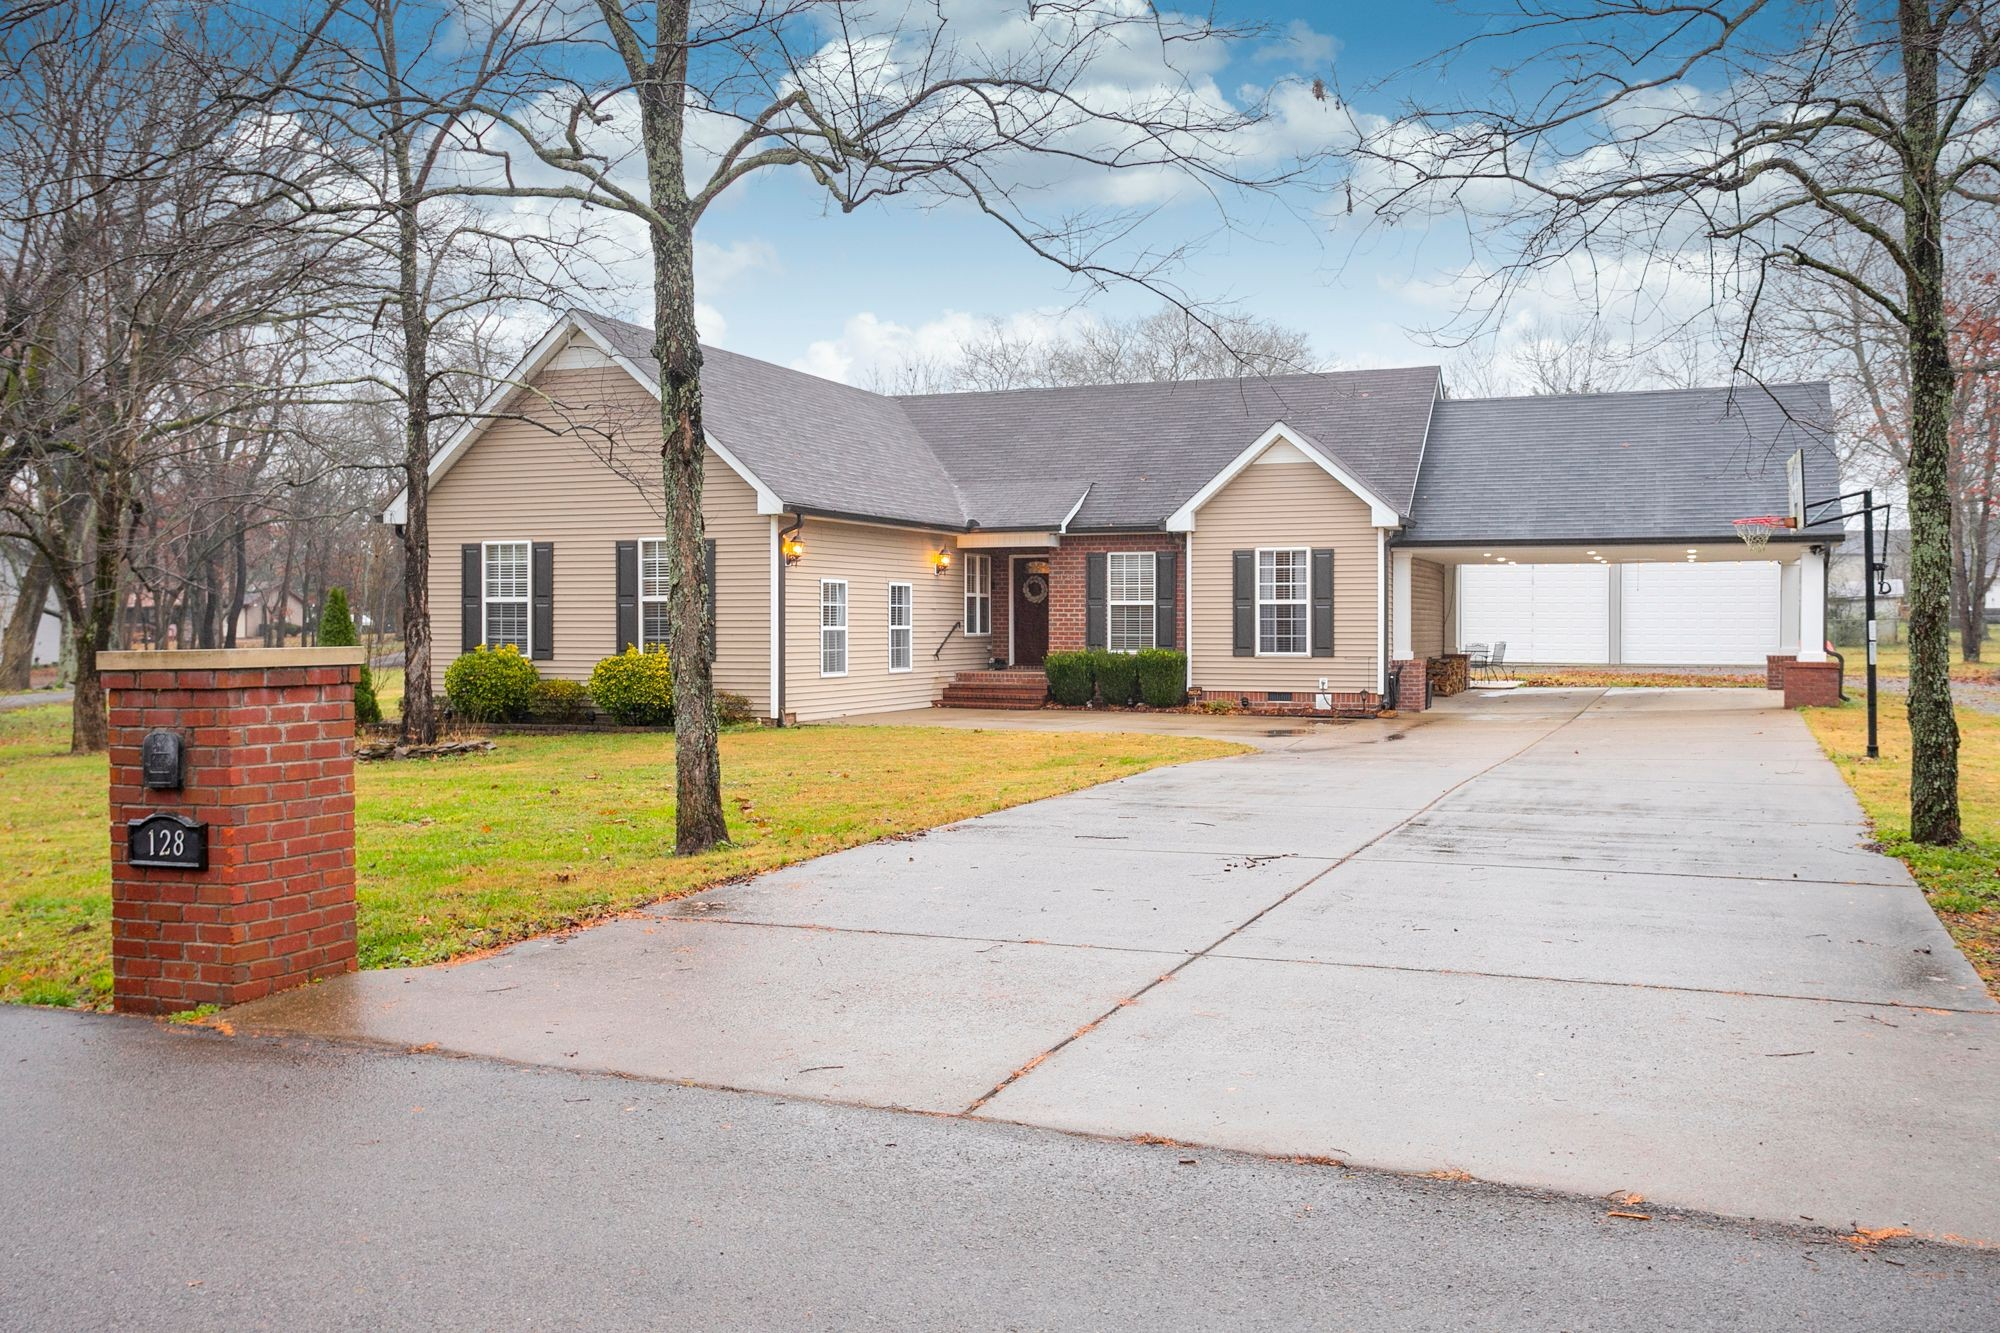 128 Juliet Ave Property Photo - Murfreesboro, TN real estate listing